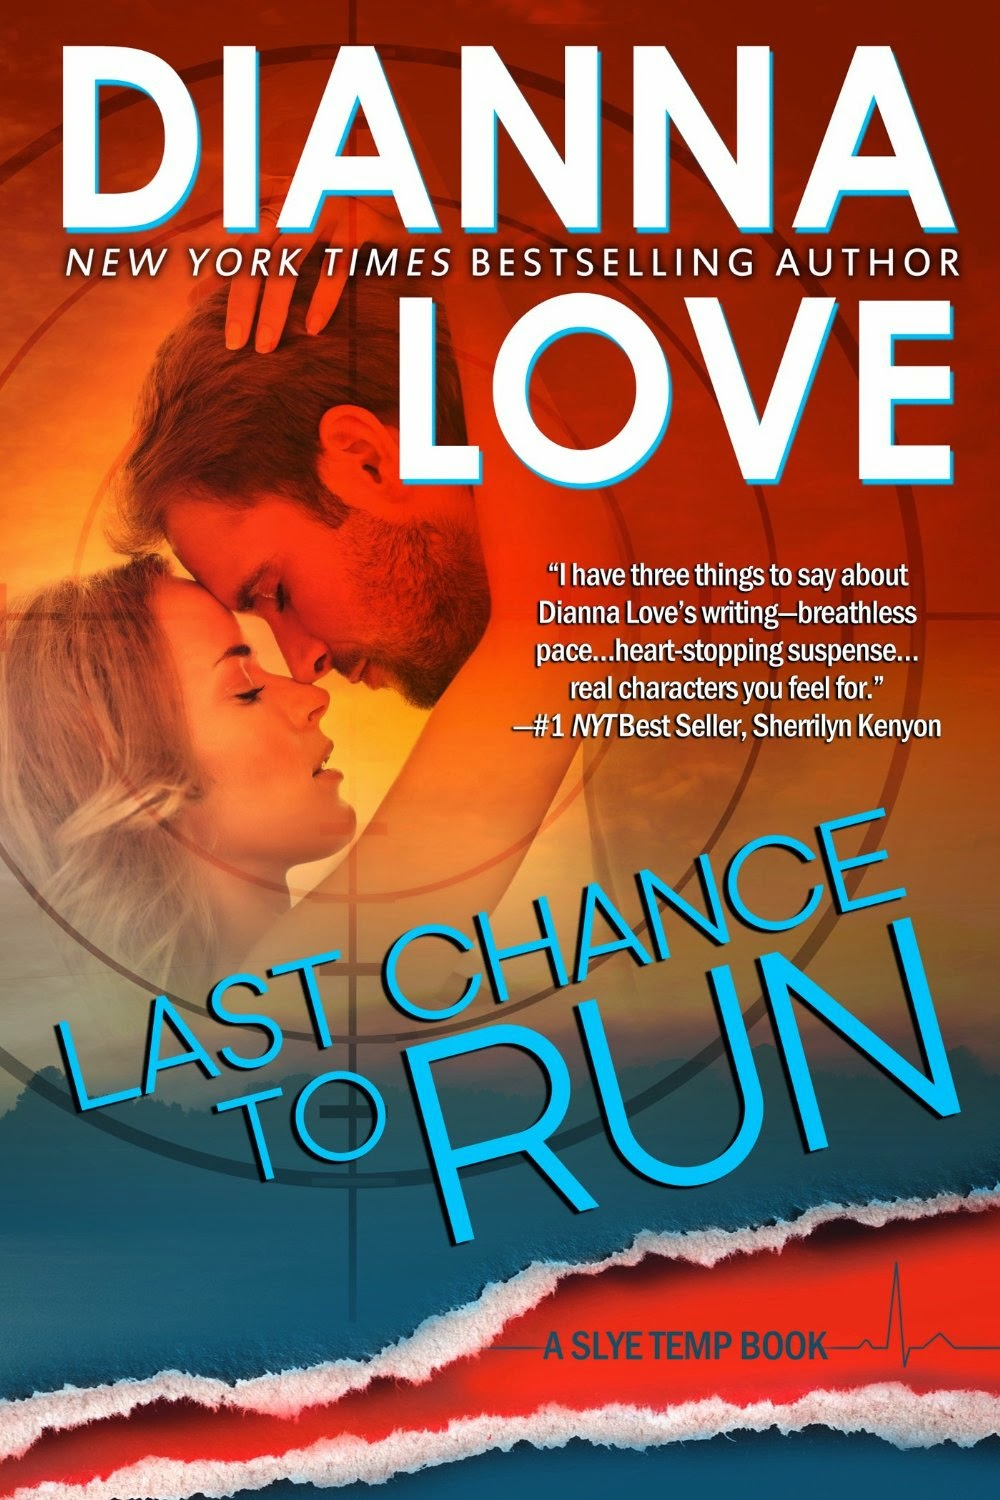 Last Chance To Run (Slye Temp) by Dianna Love (Romantic Suspense)